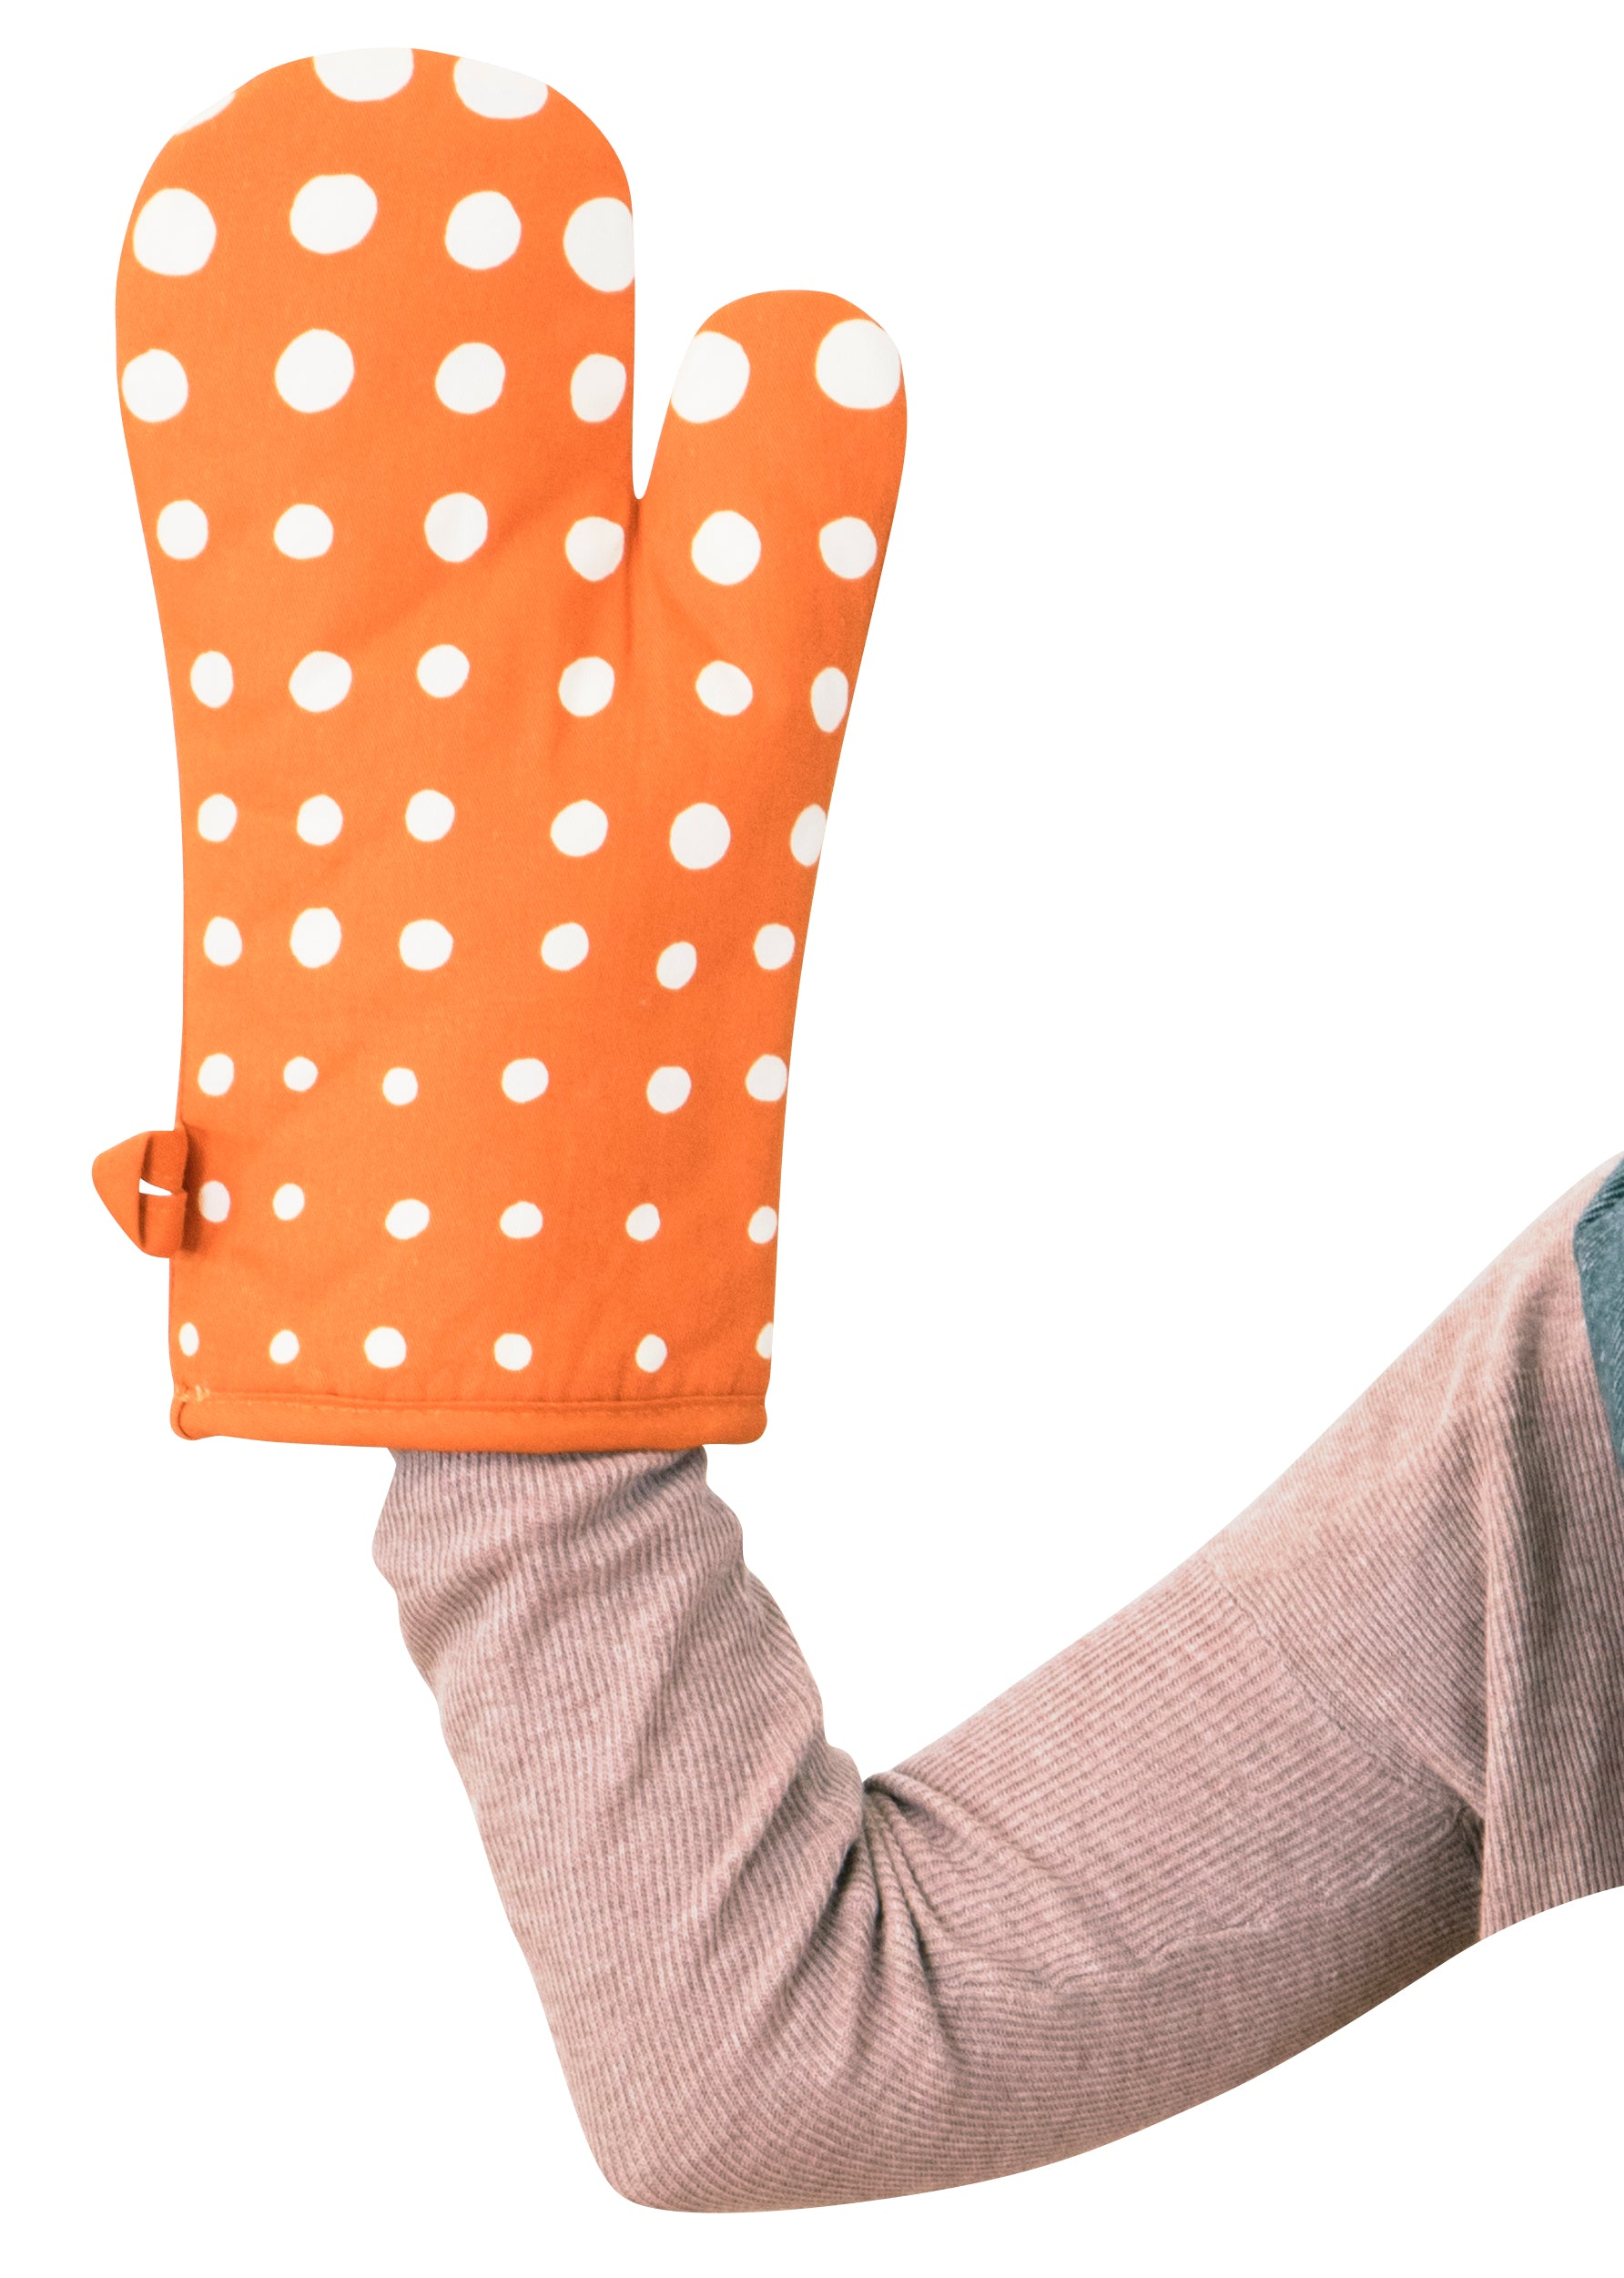 Blue Q Oven Mitt - Cheese